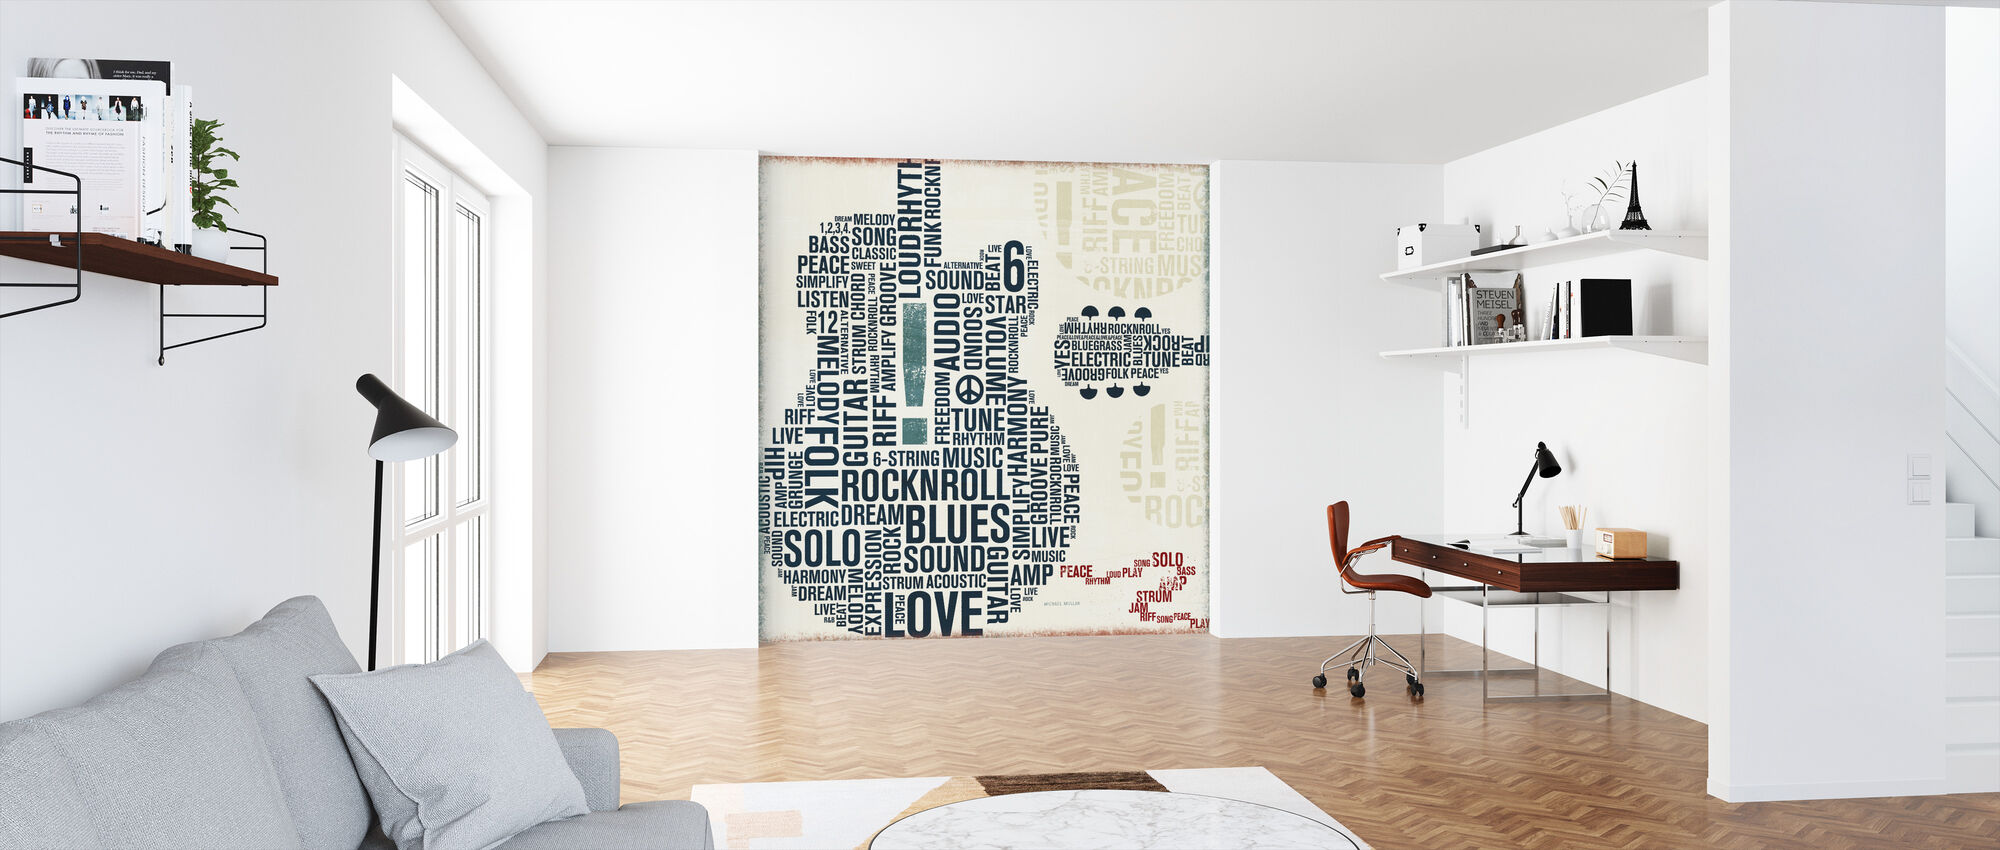 Type Guitar Square II - Wallpaper - Office